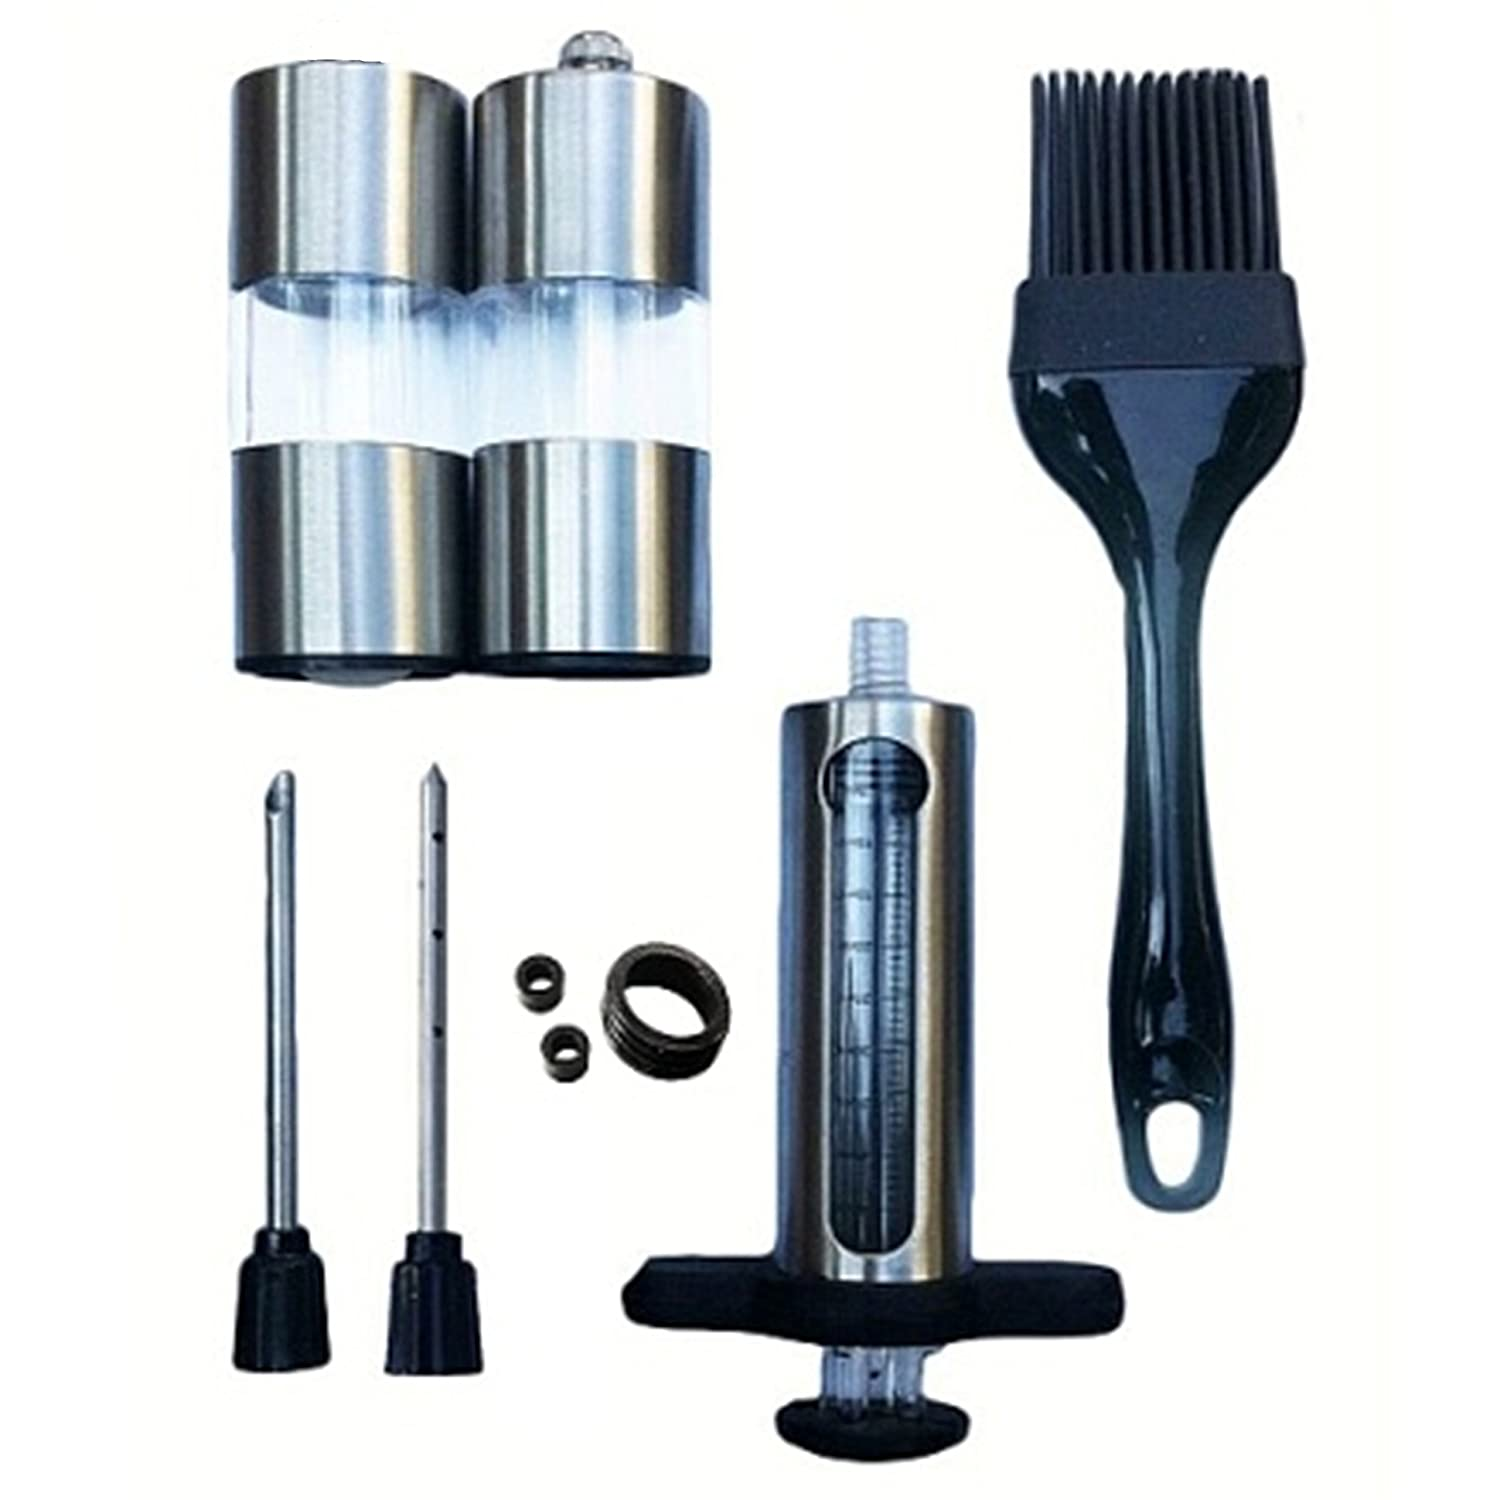 ekSel Marinade Injector Set